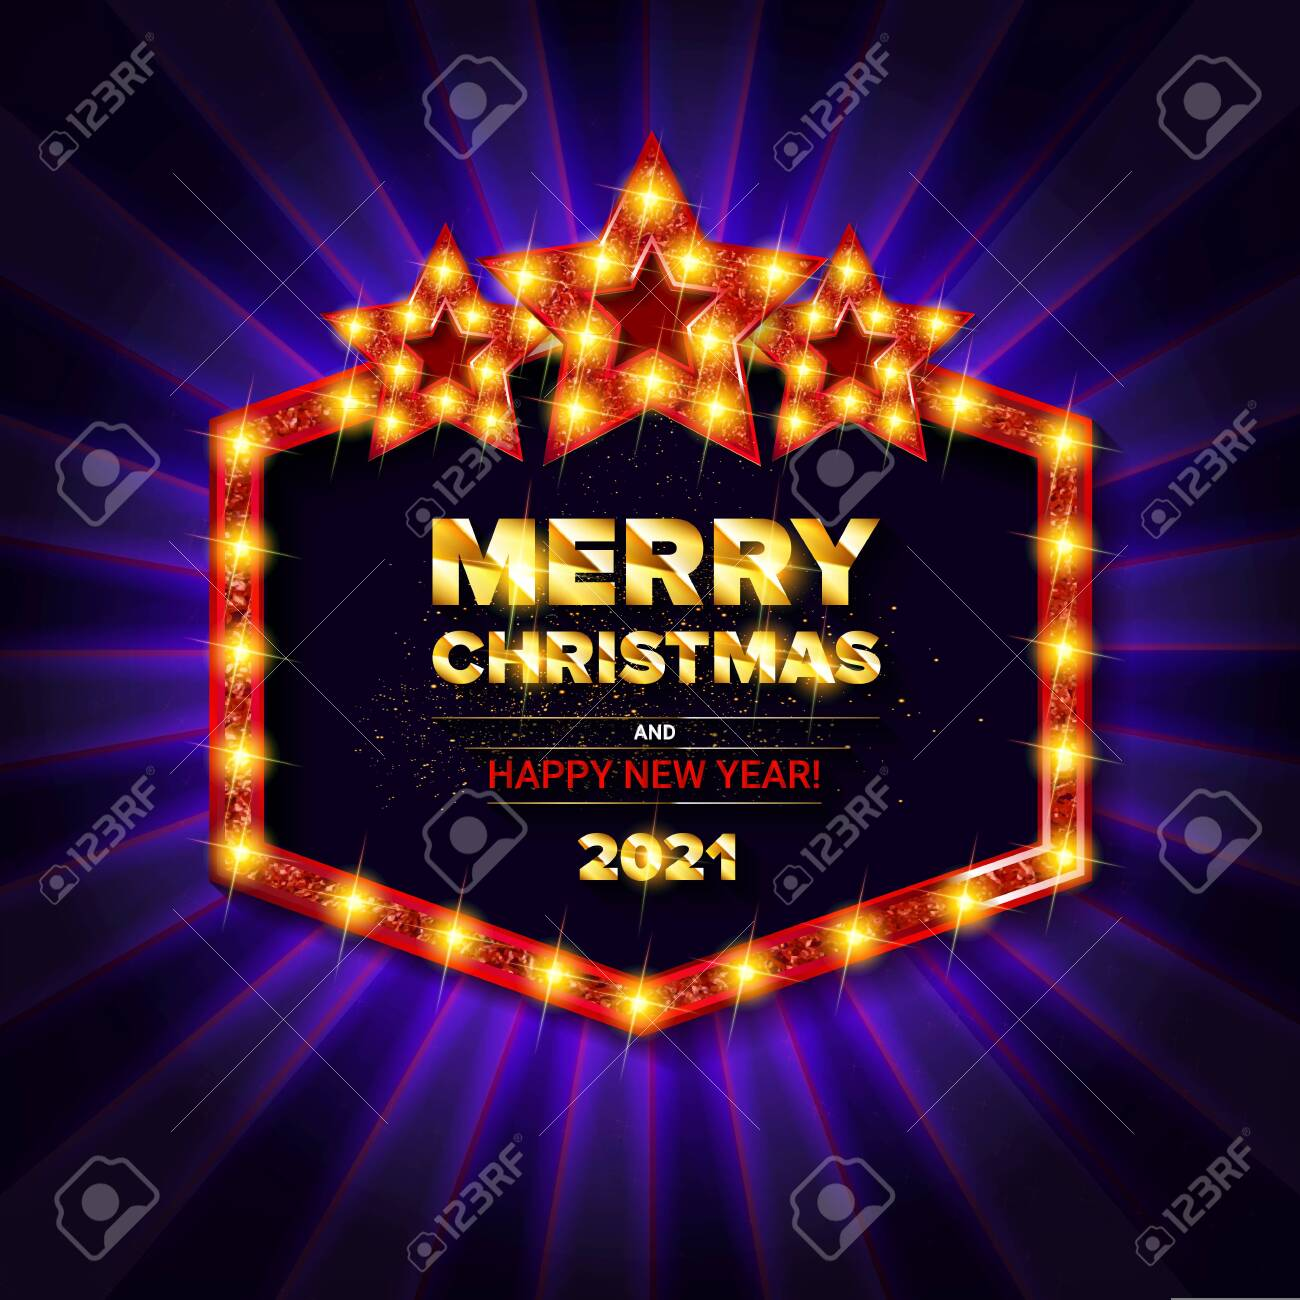 Christmas Party Near Me 2021 Invitation Merry Christmas Party 2021 Poster Banner And Card Royalty Free Cliparts Vectors And Stock Illustration Image 144603398